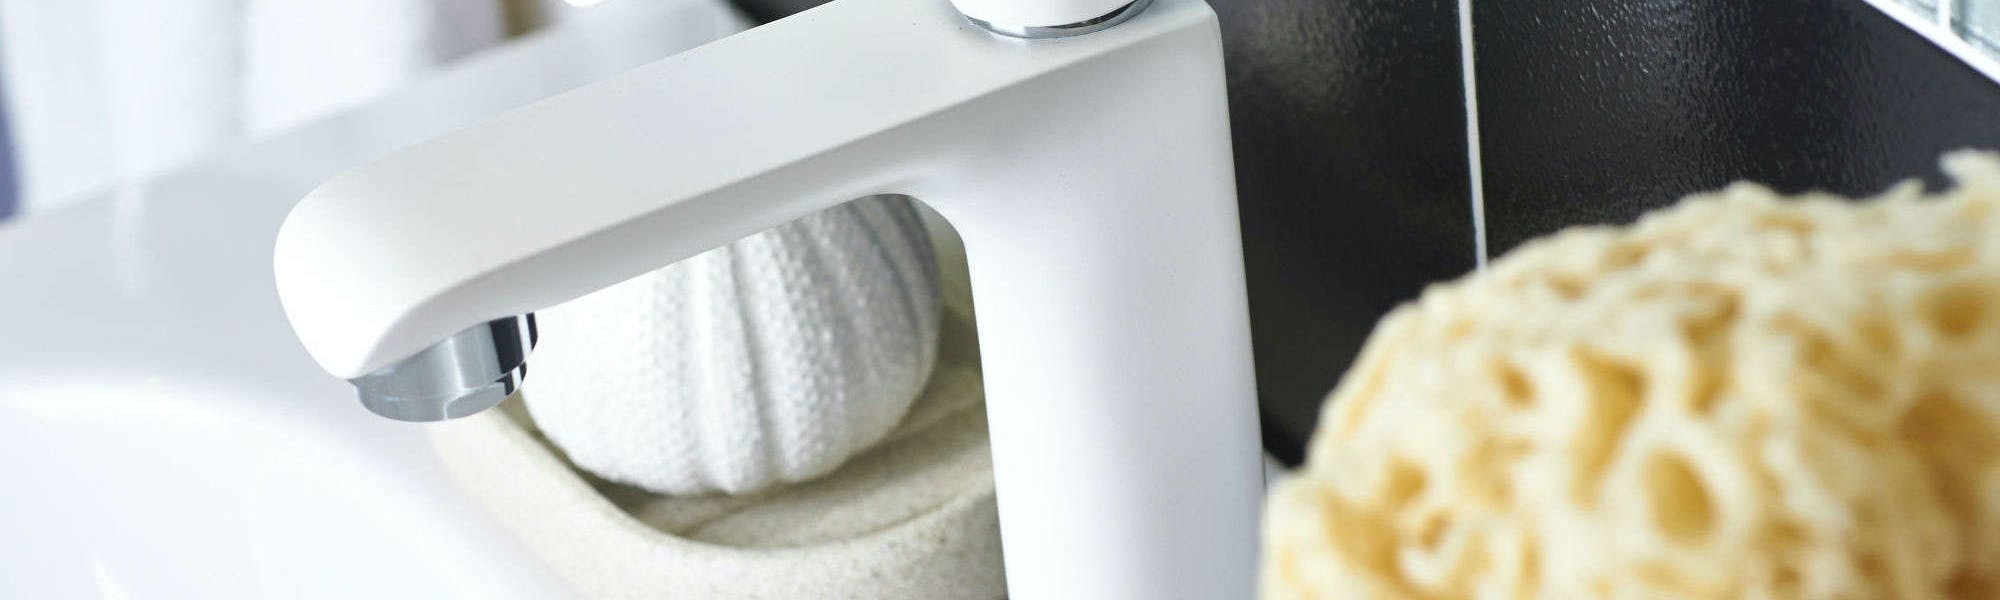 We can make the smallest of Cloakroom Bathrooms stylish using design tricks & fitting clever space saving solution